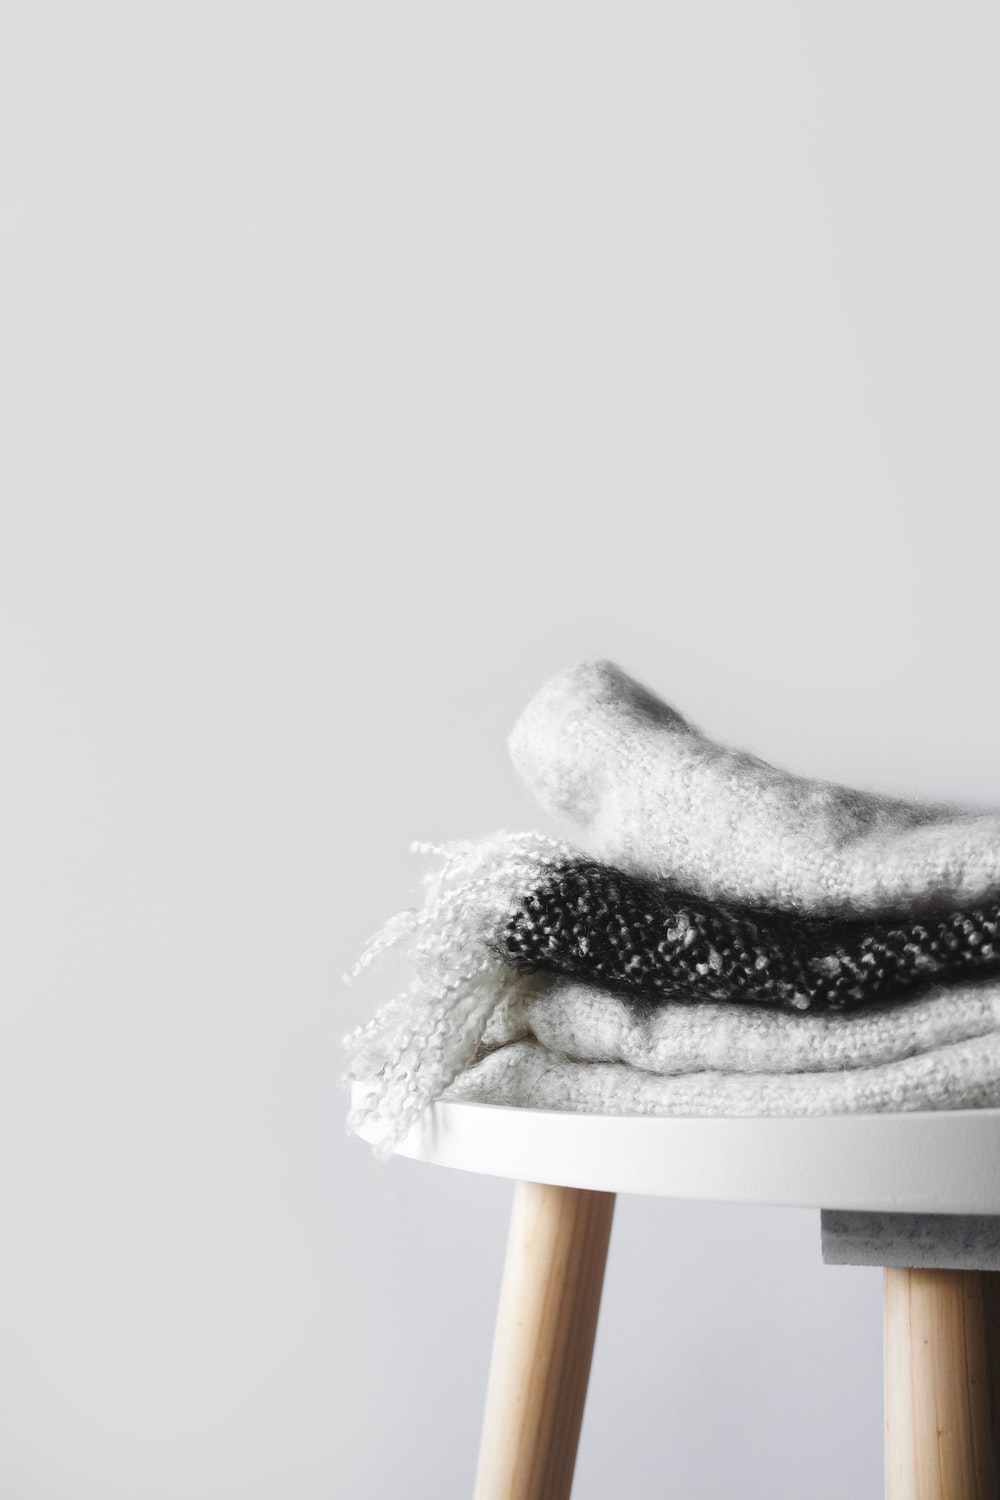 white and black textile on white and brown wooden seat